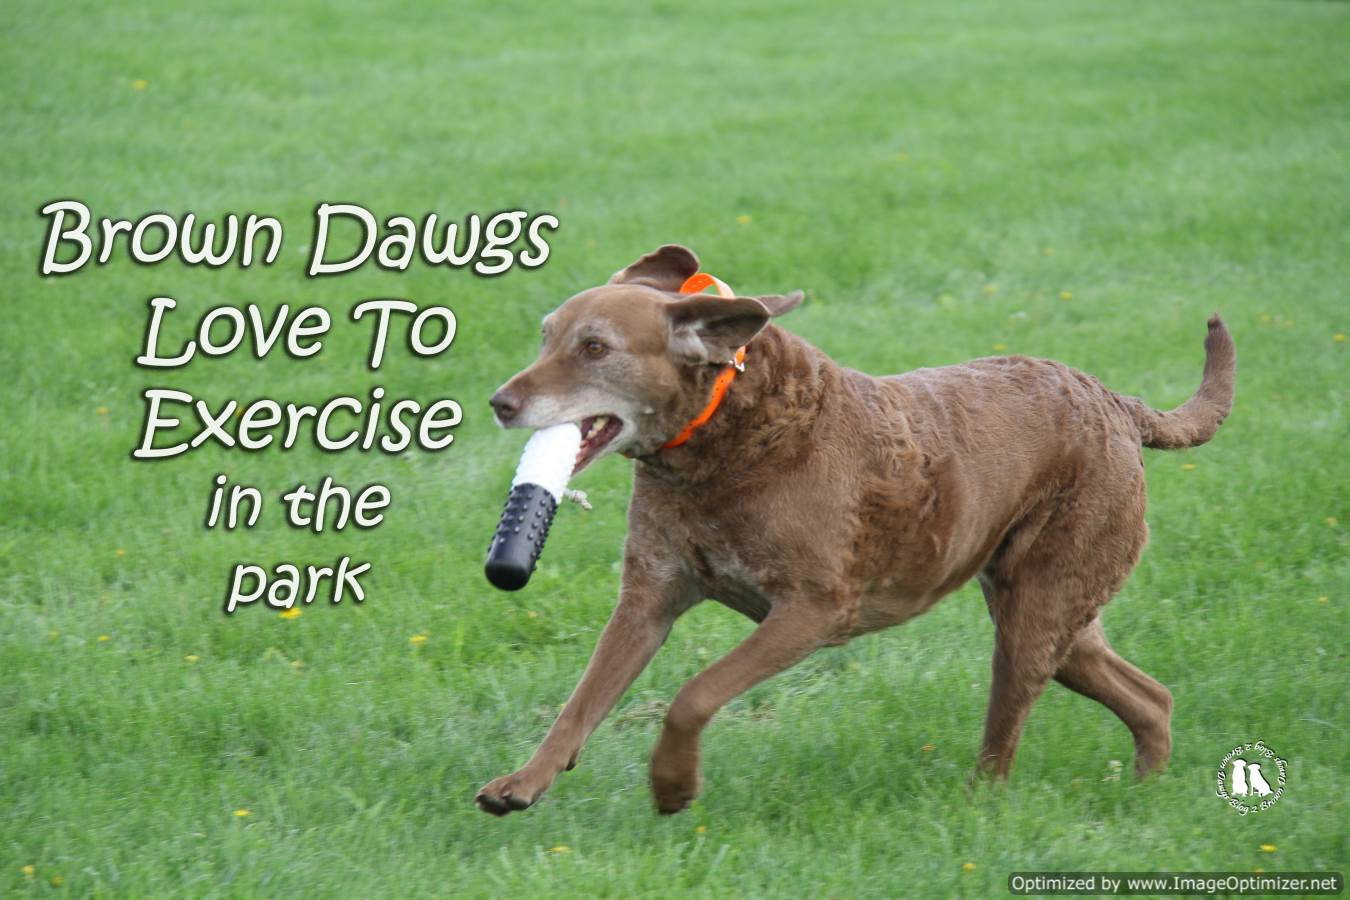 Brown Dawgs Love To Exercise In The Park